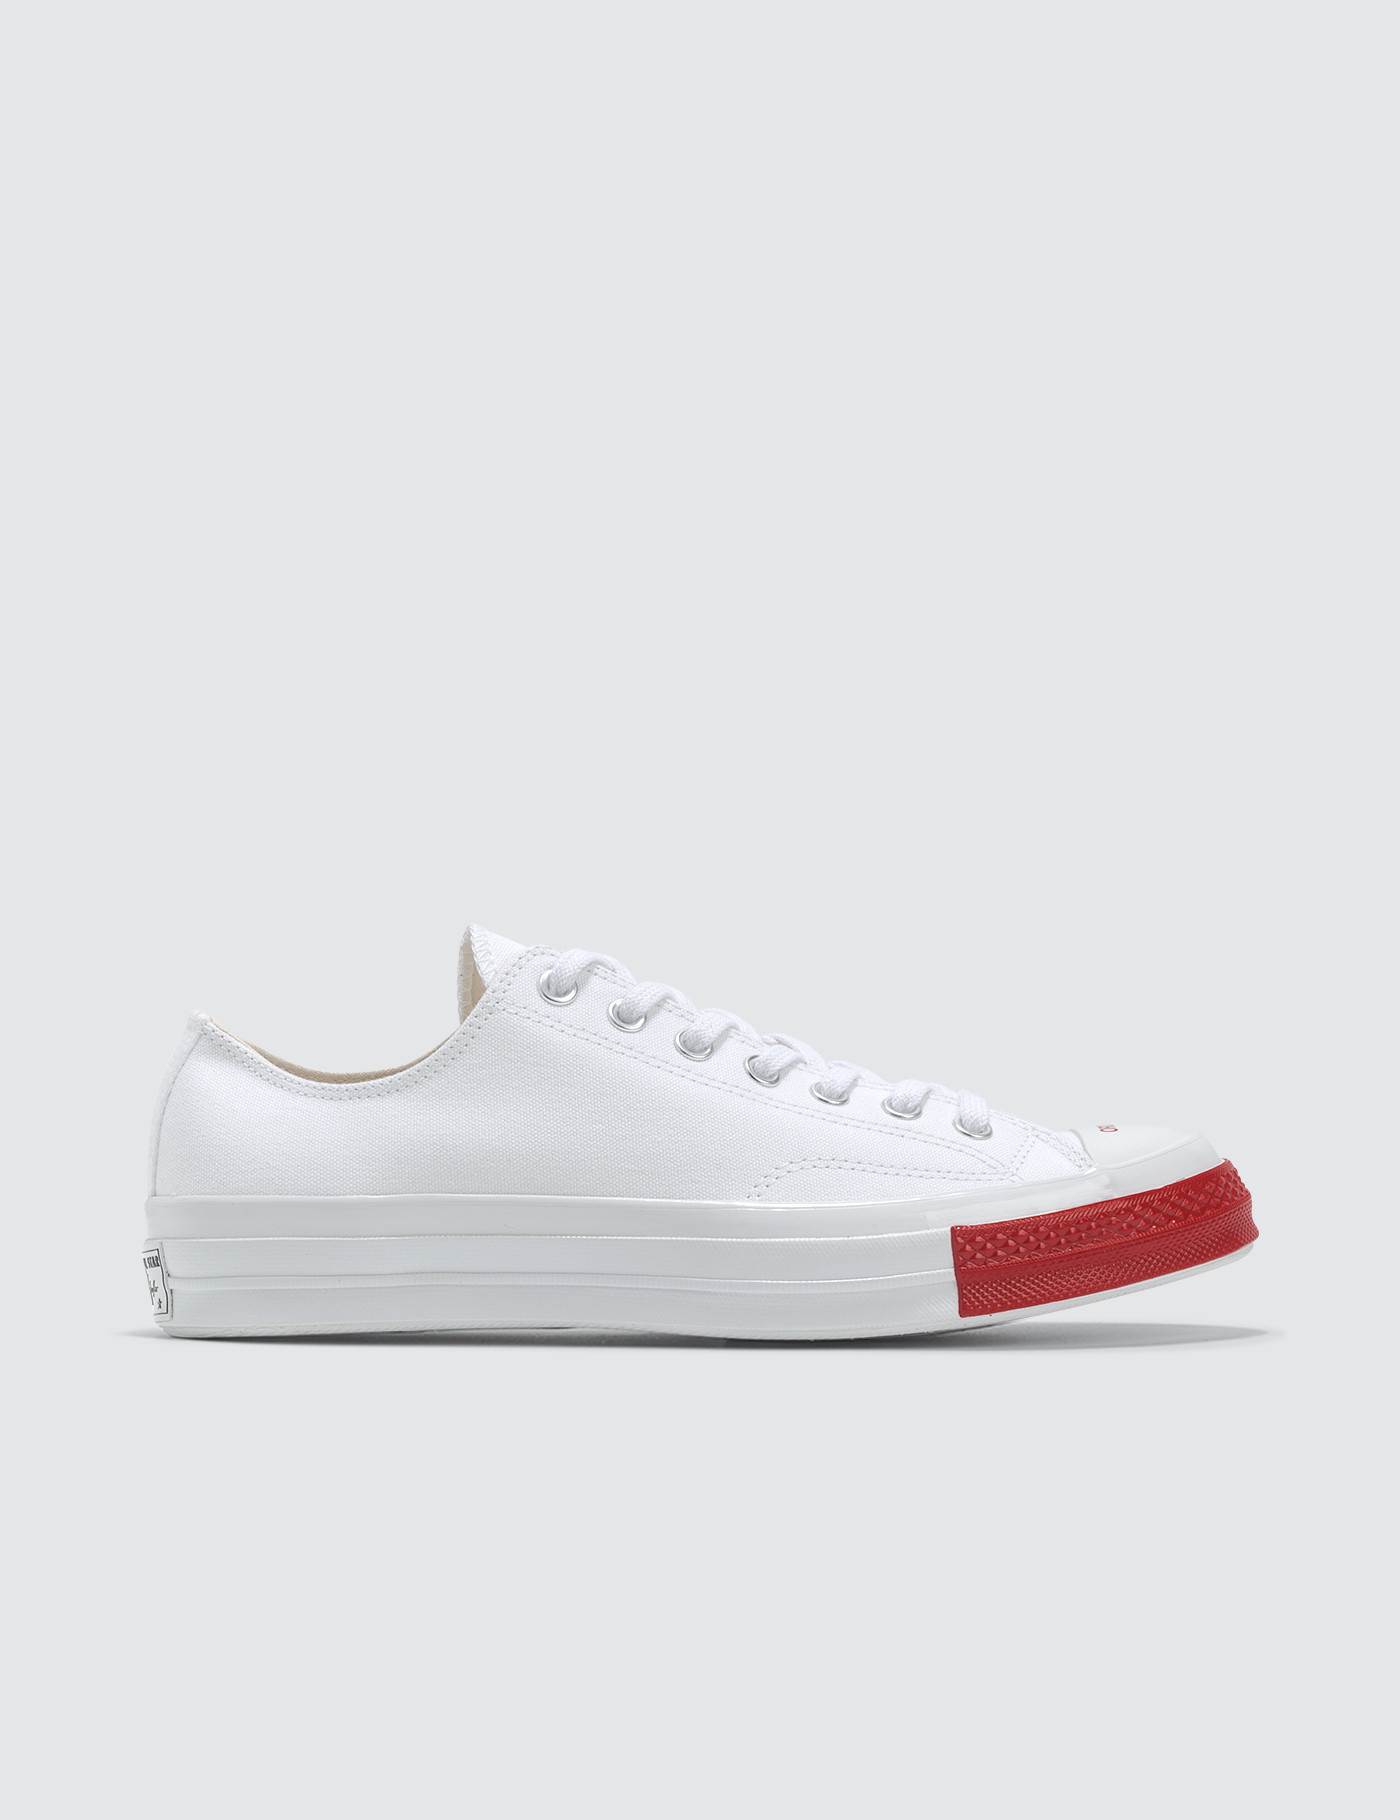 Buy Original Converse Undercover X Chuck Taylor at Indonesia  0a1586468